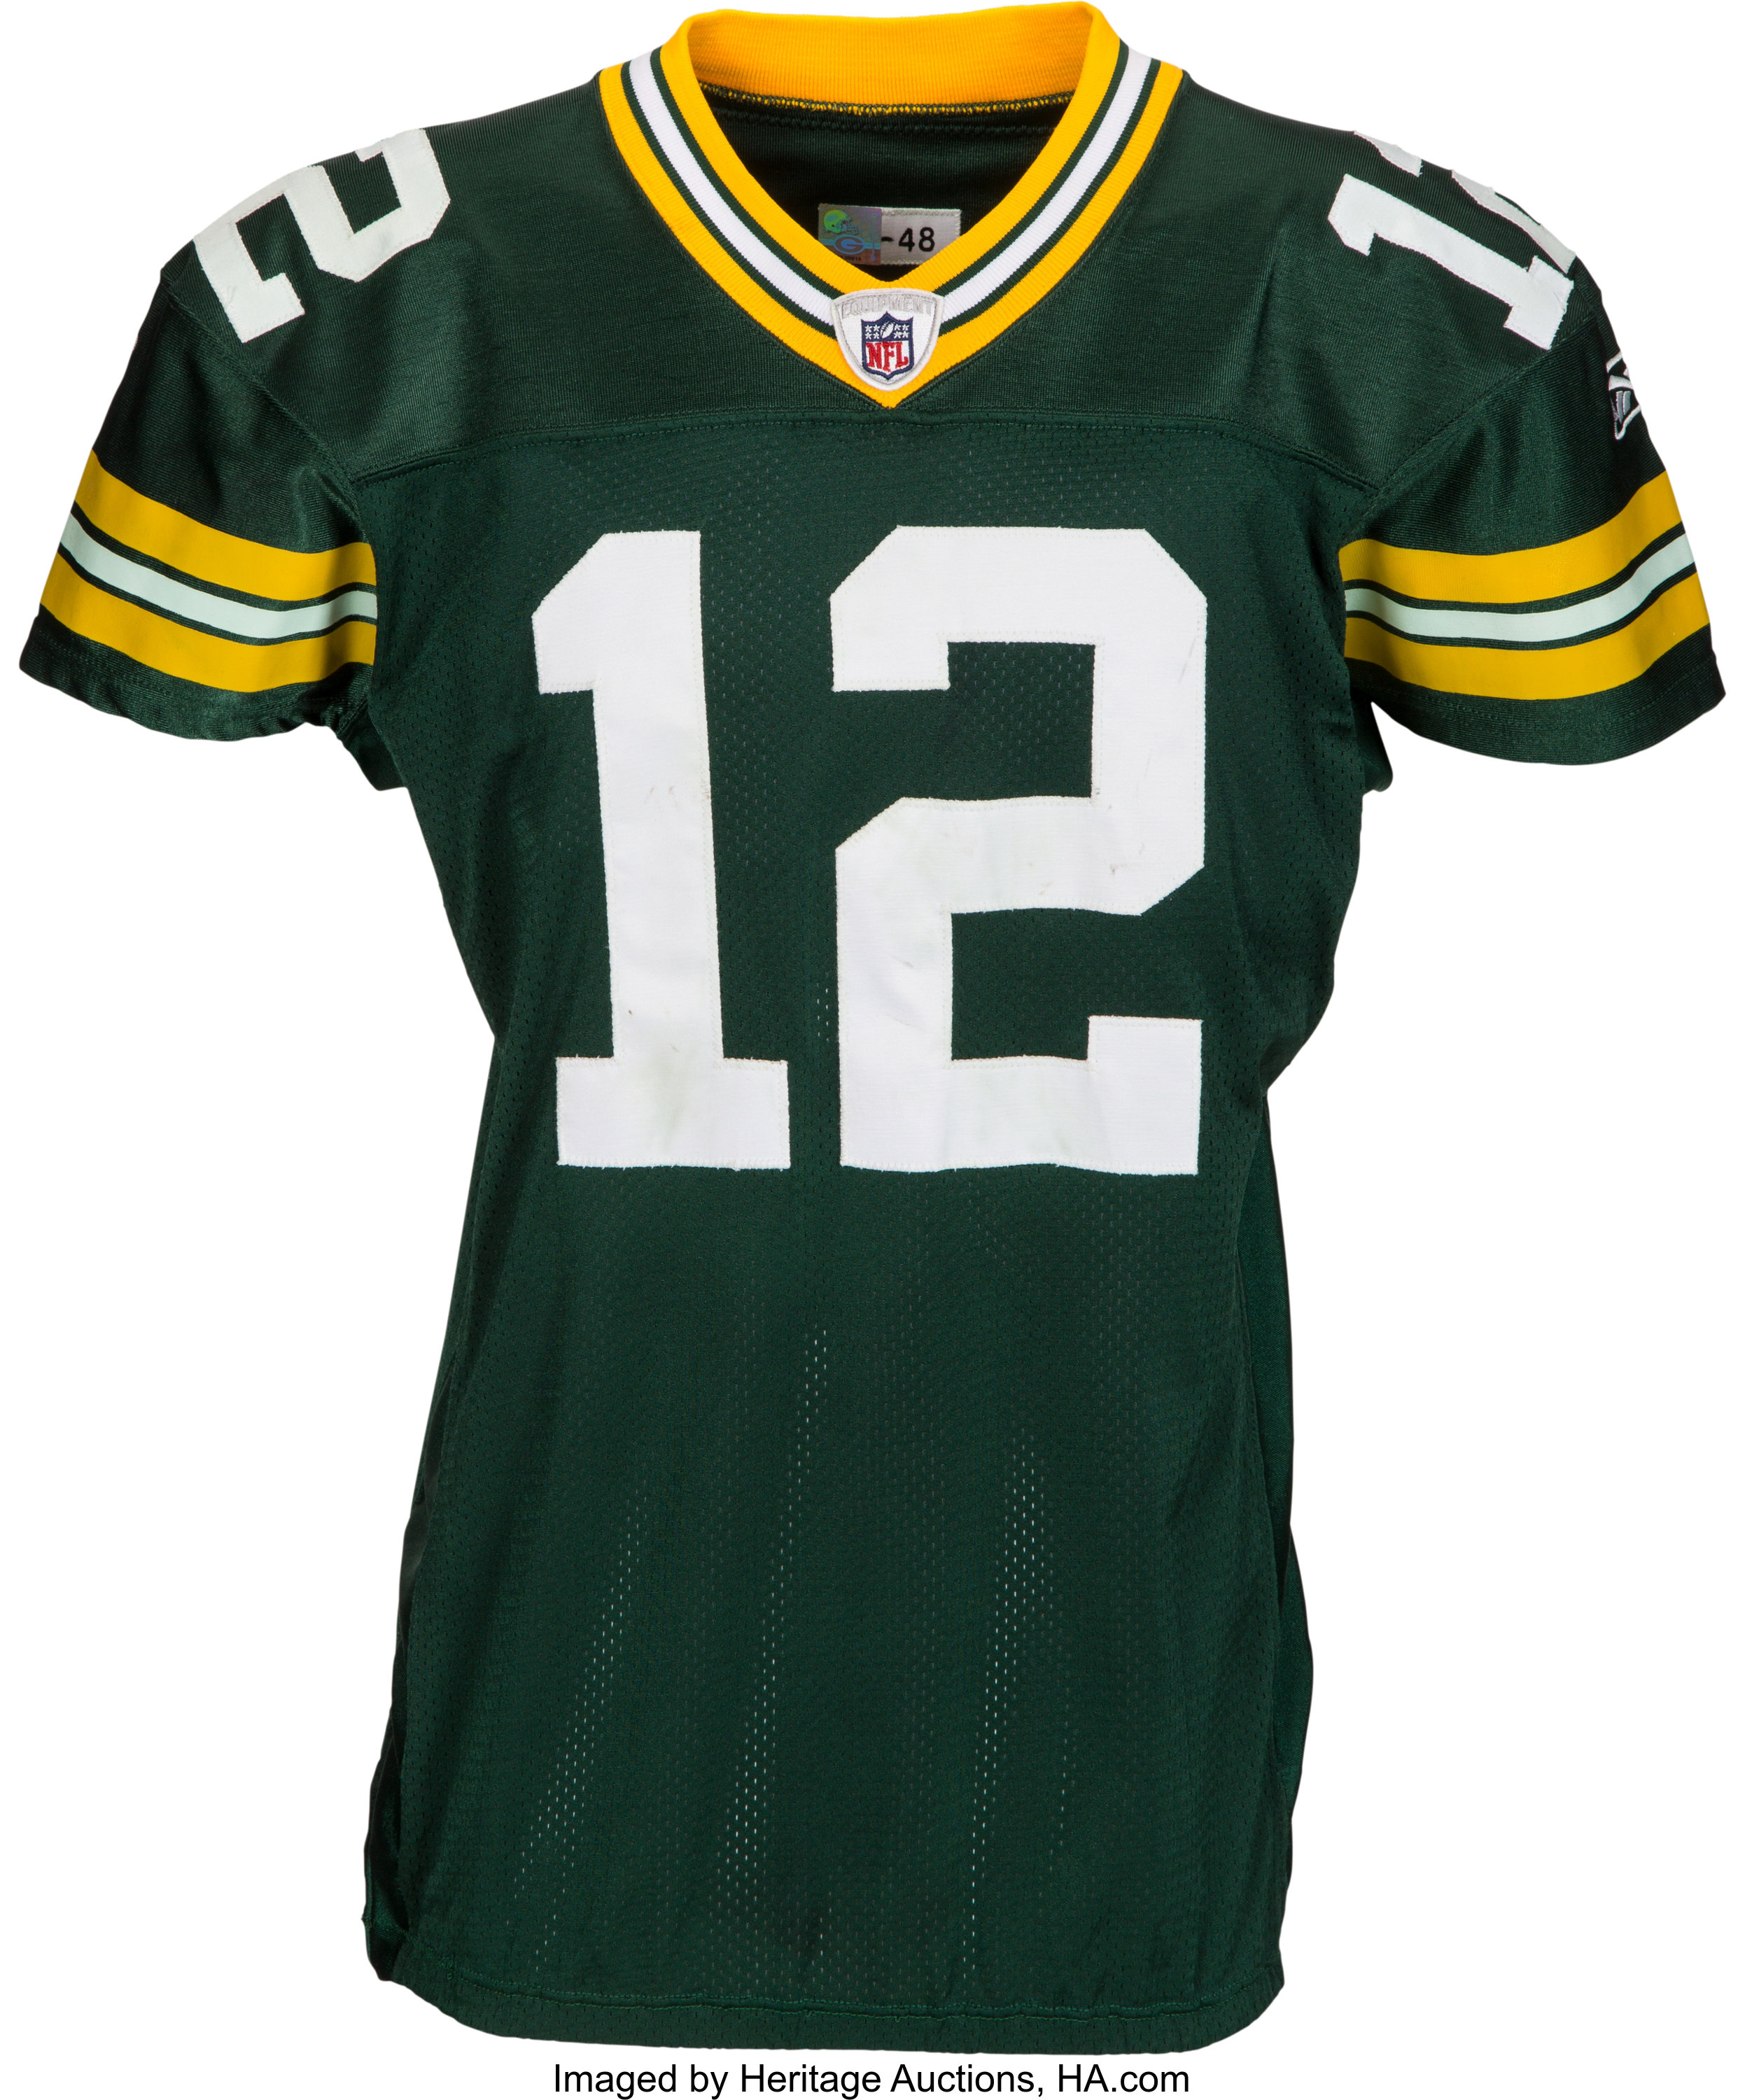 best cheap 119d7 d9cc0 2011 Aaron Rodgers Game Worn Green Bay Packers Jersey from ...